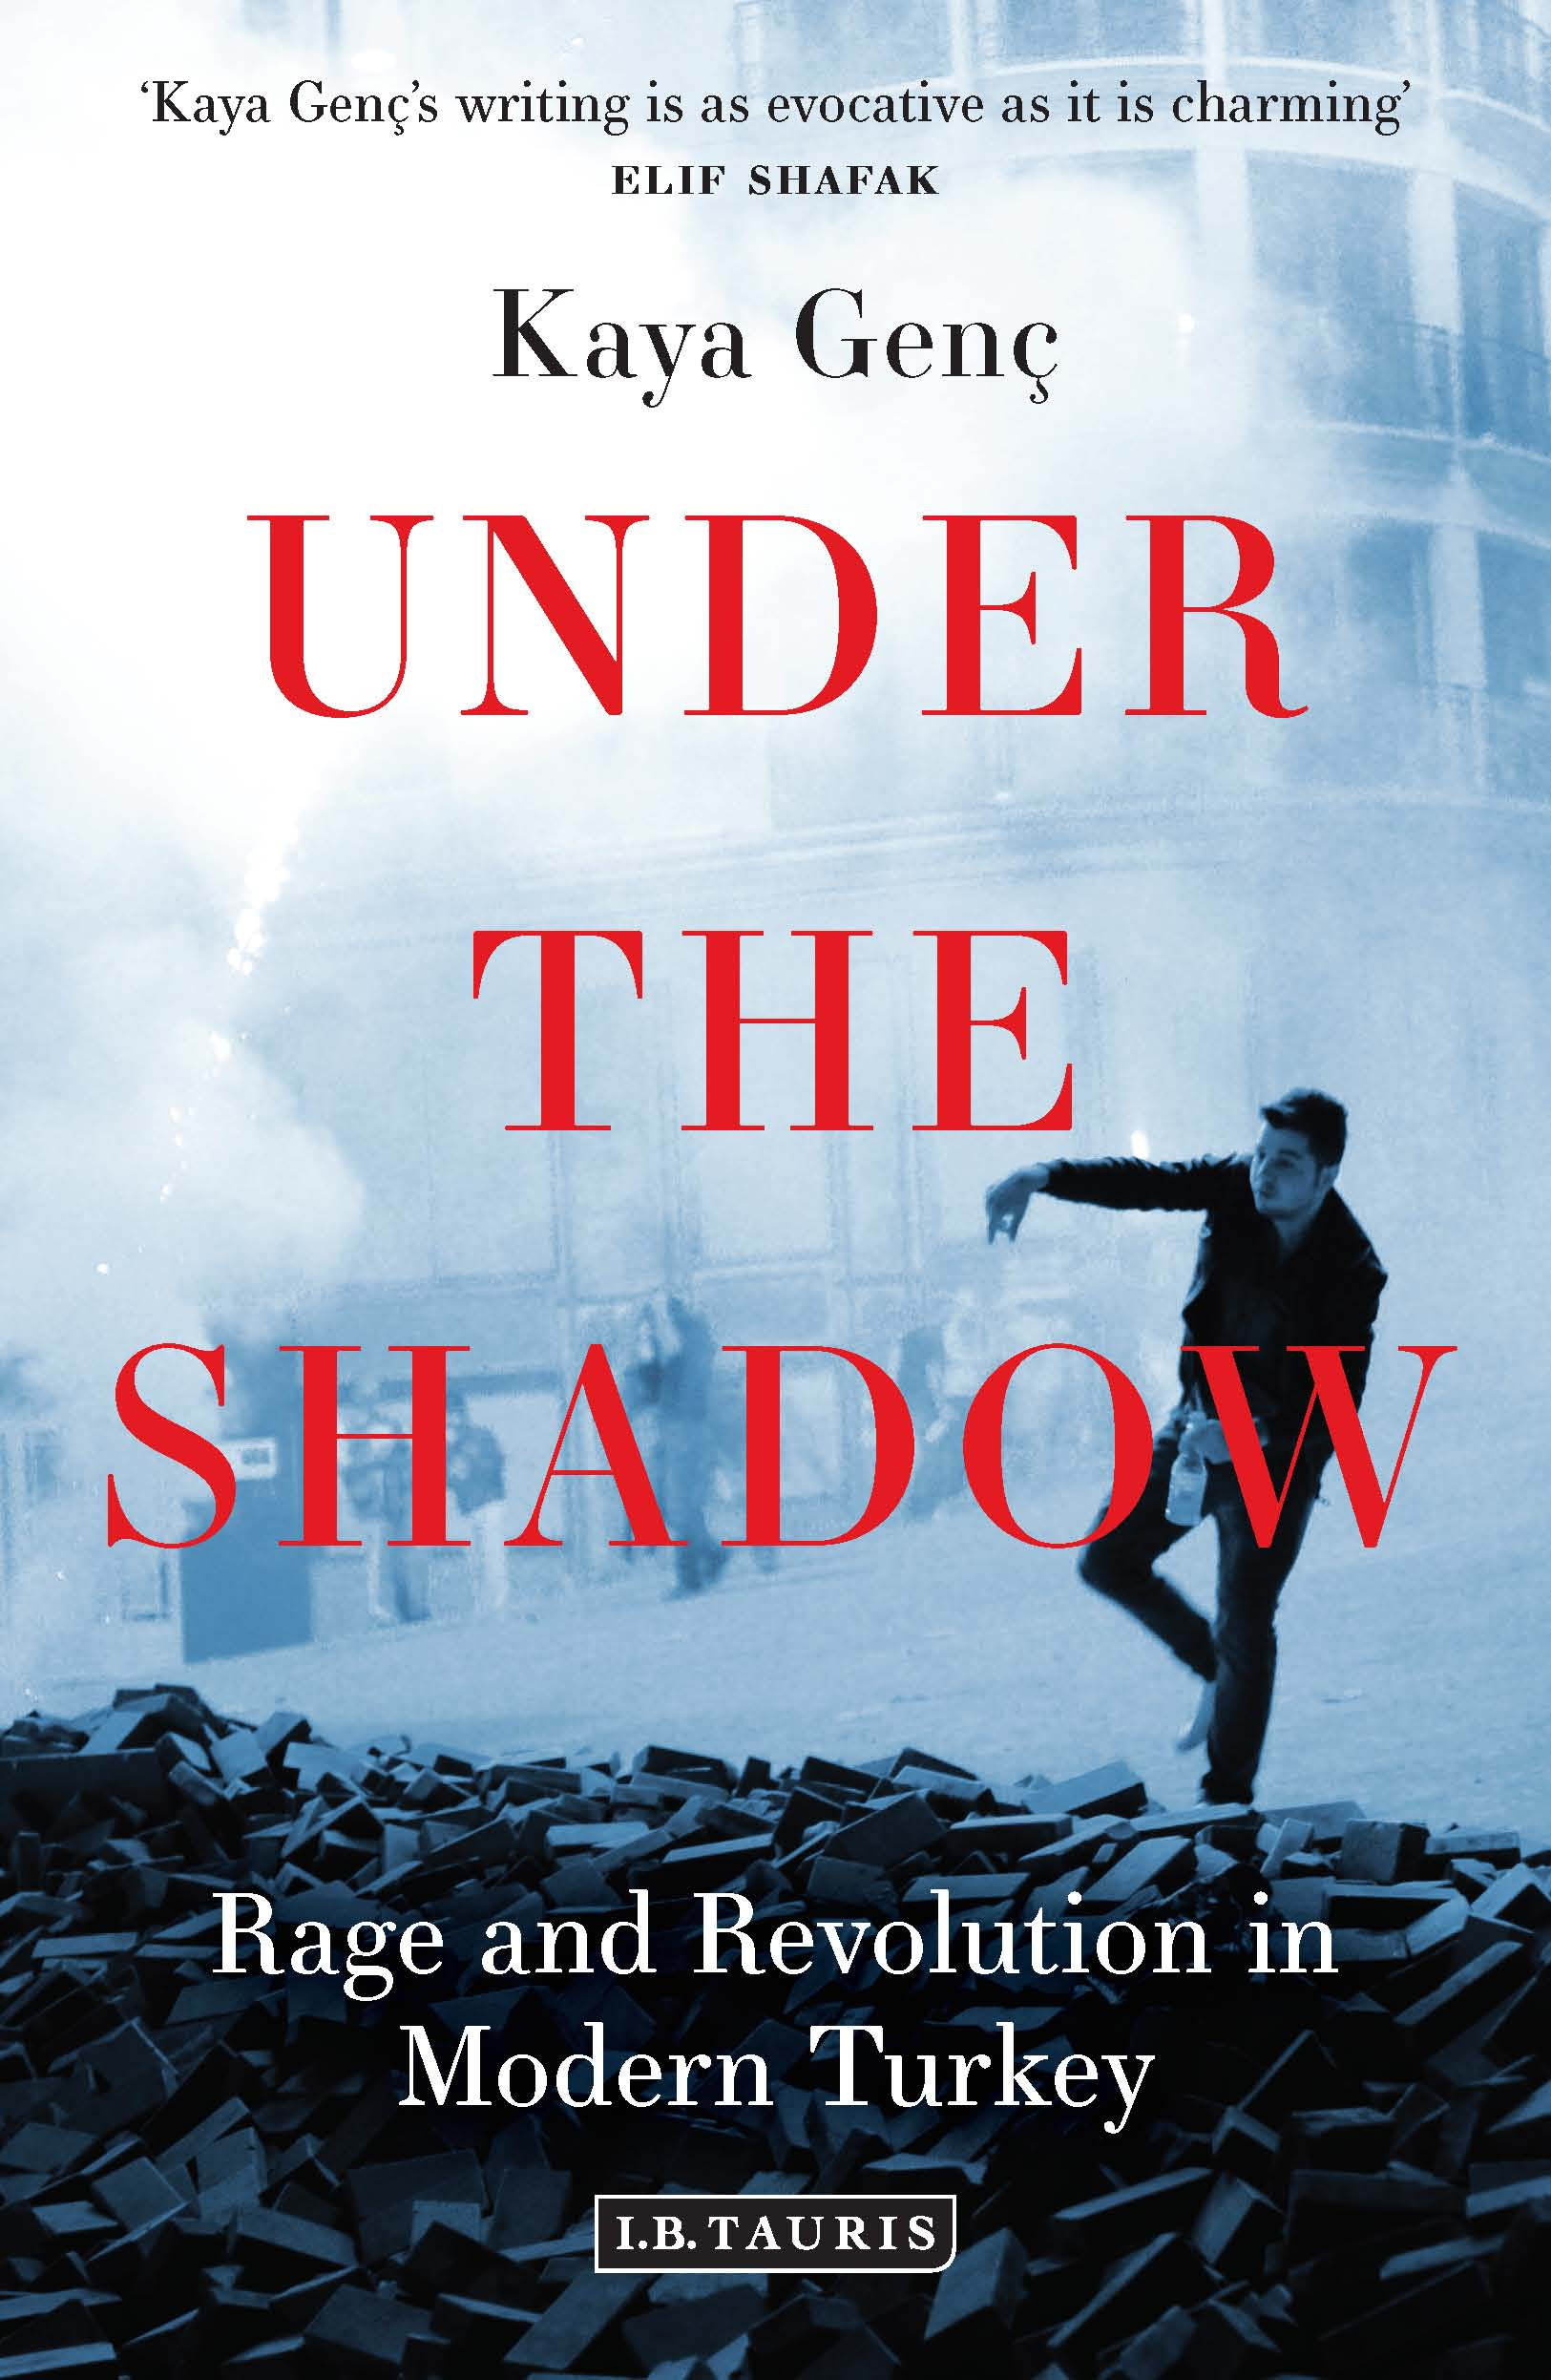 Book Launch: Under the Shadow by Kaya Genç with Molly Crabapple